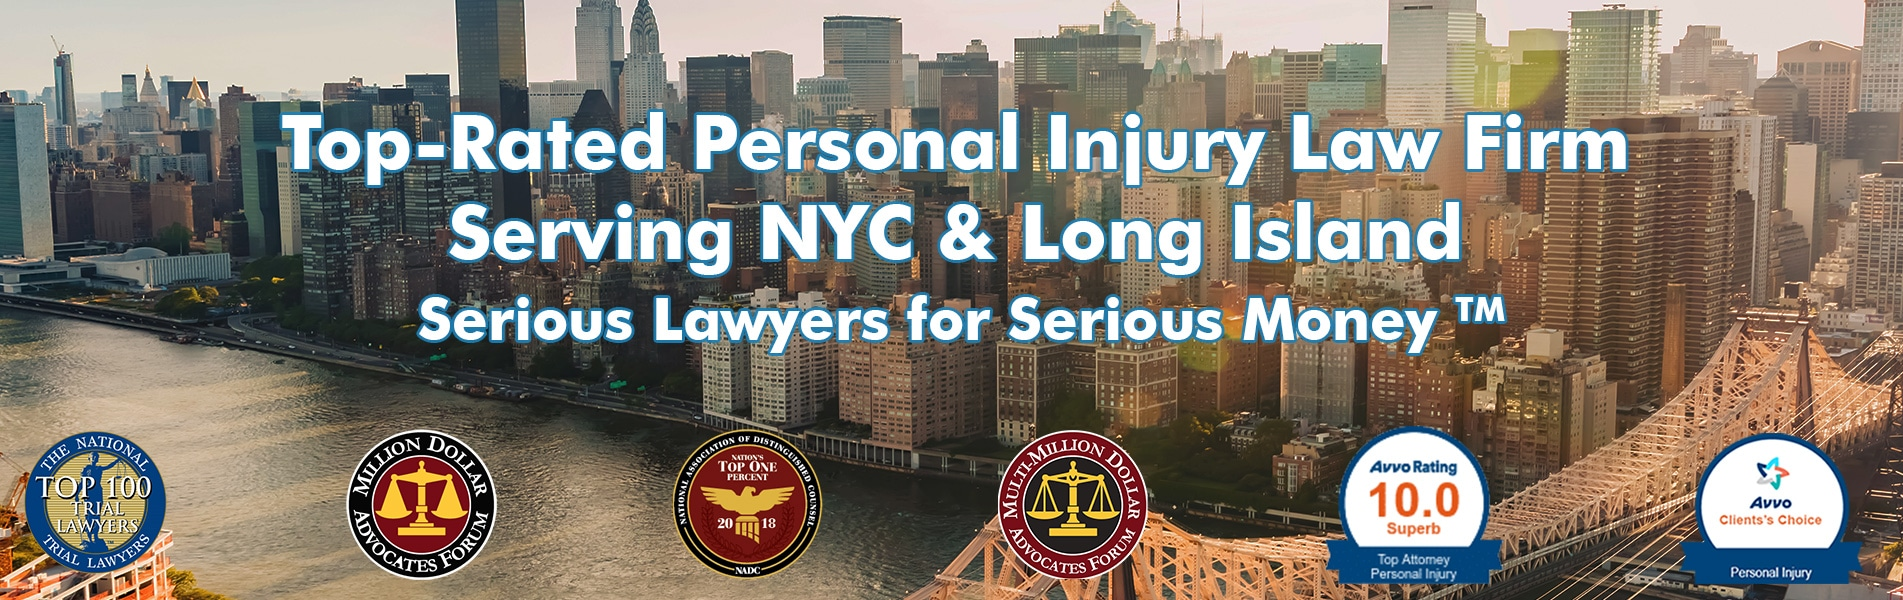 New York Personal Injury Law Firm